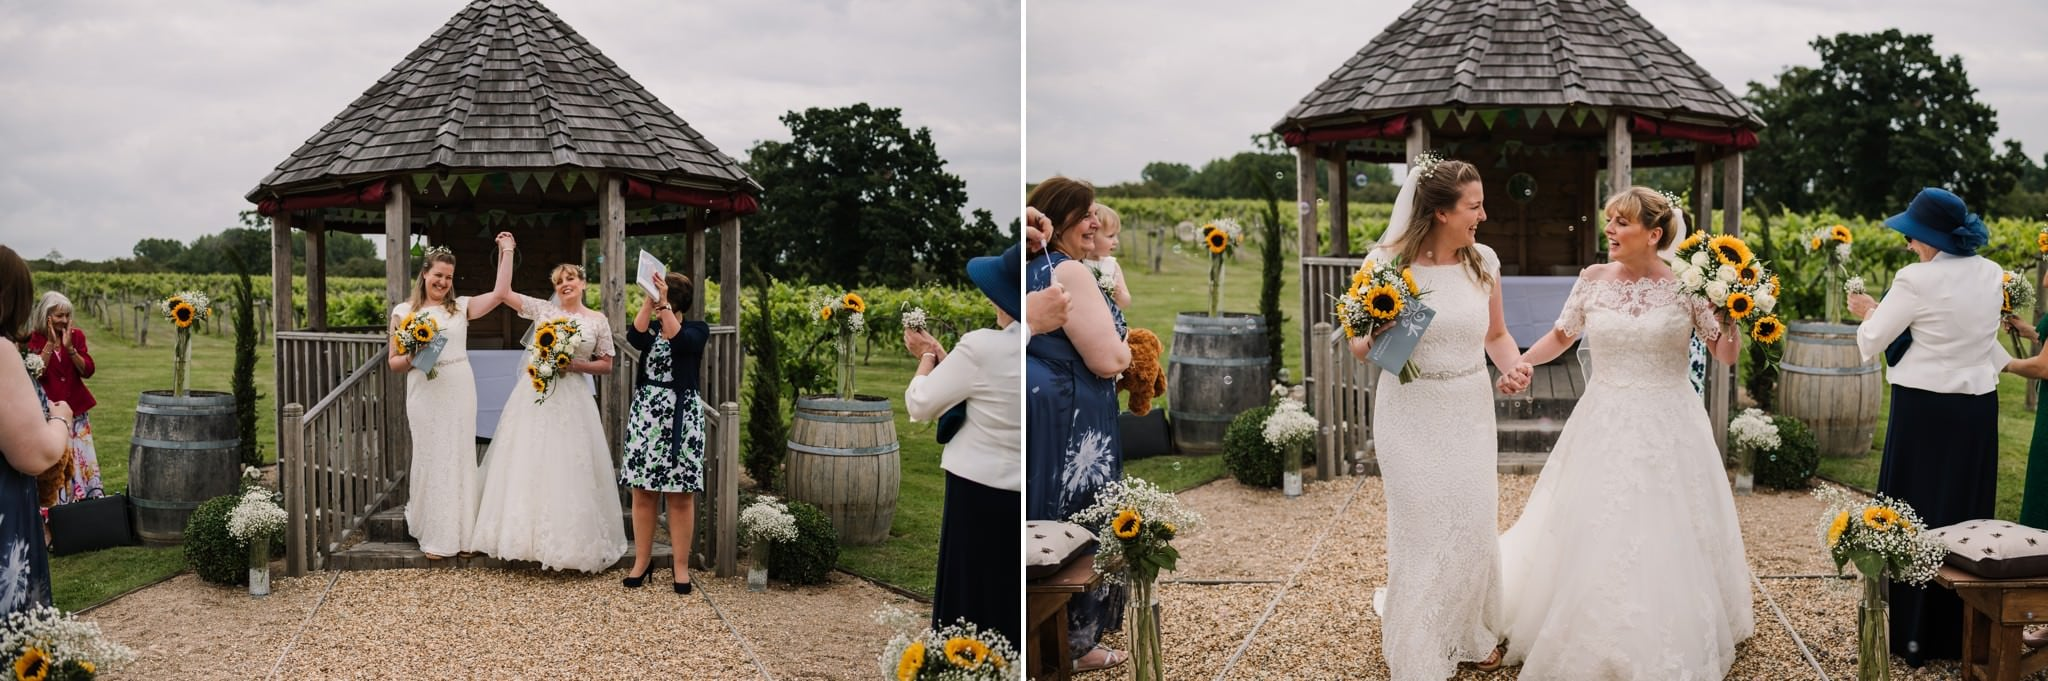 Outdoor wedding ceremony at Three Choirs Vineyard Wickham